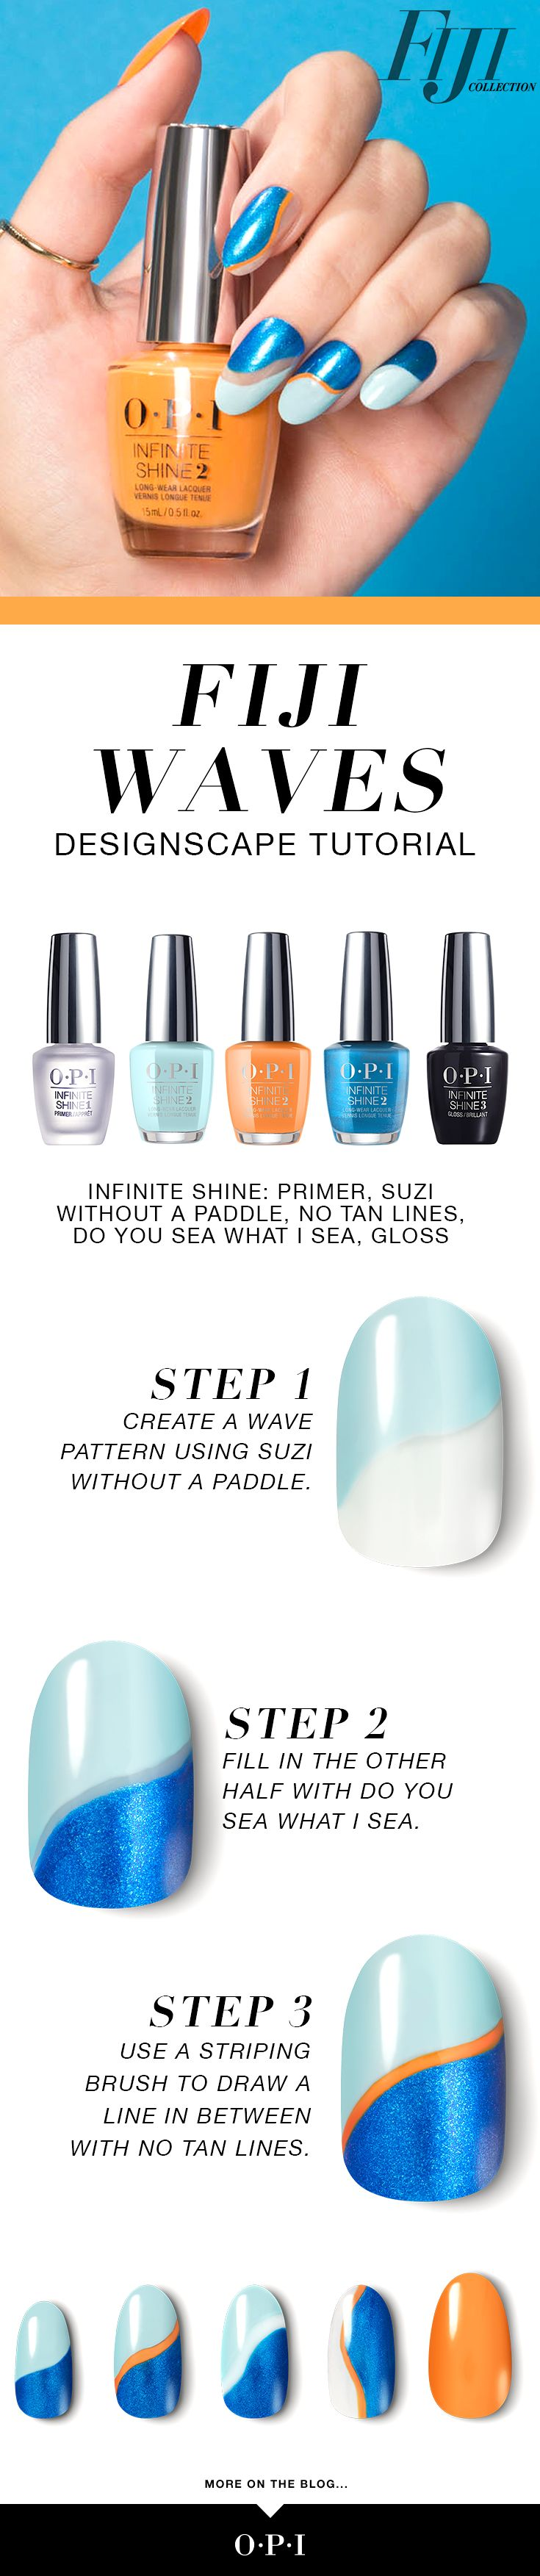 "OPI presents Fiji inspired nail art, ""Fiji Waves"". Try this fun nail art using the OPI Fiji collection in Infinite Shine. Step 1: Create a wave pattern using Suzi Without a Paddle. Step 2: Fill in the other half with Do You Sea What I Sea. Step 3: Use a striping brush to draw a line in between with No Tan Lines."